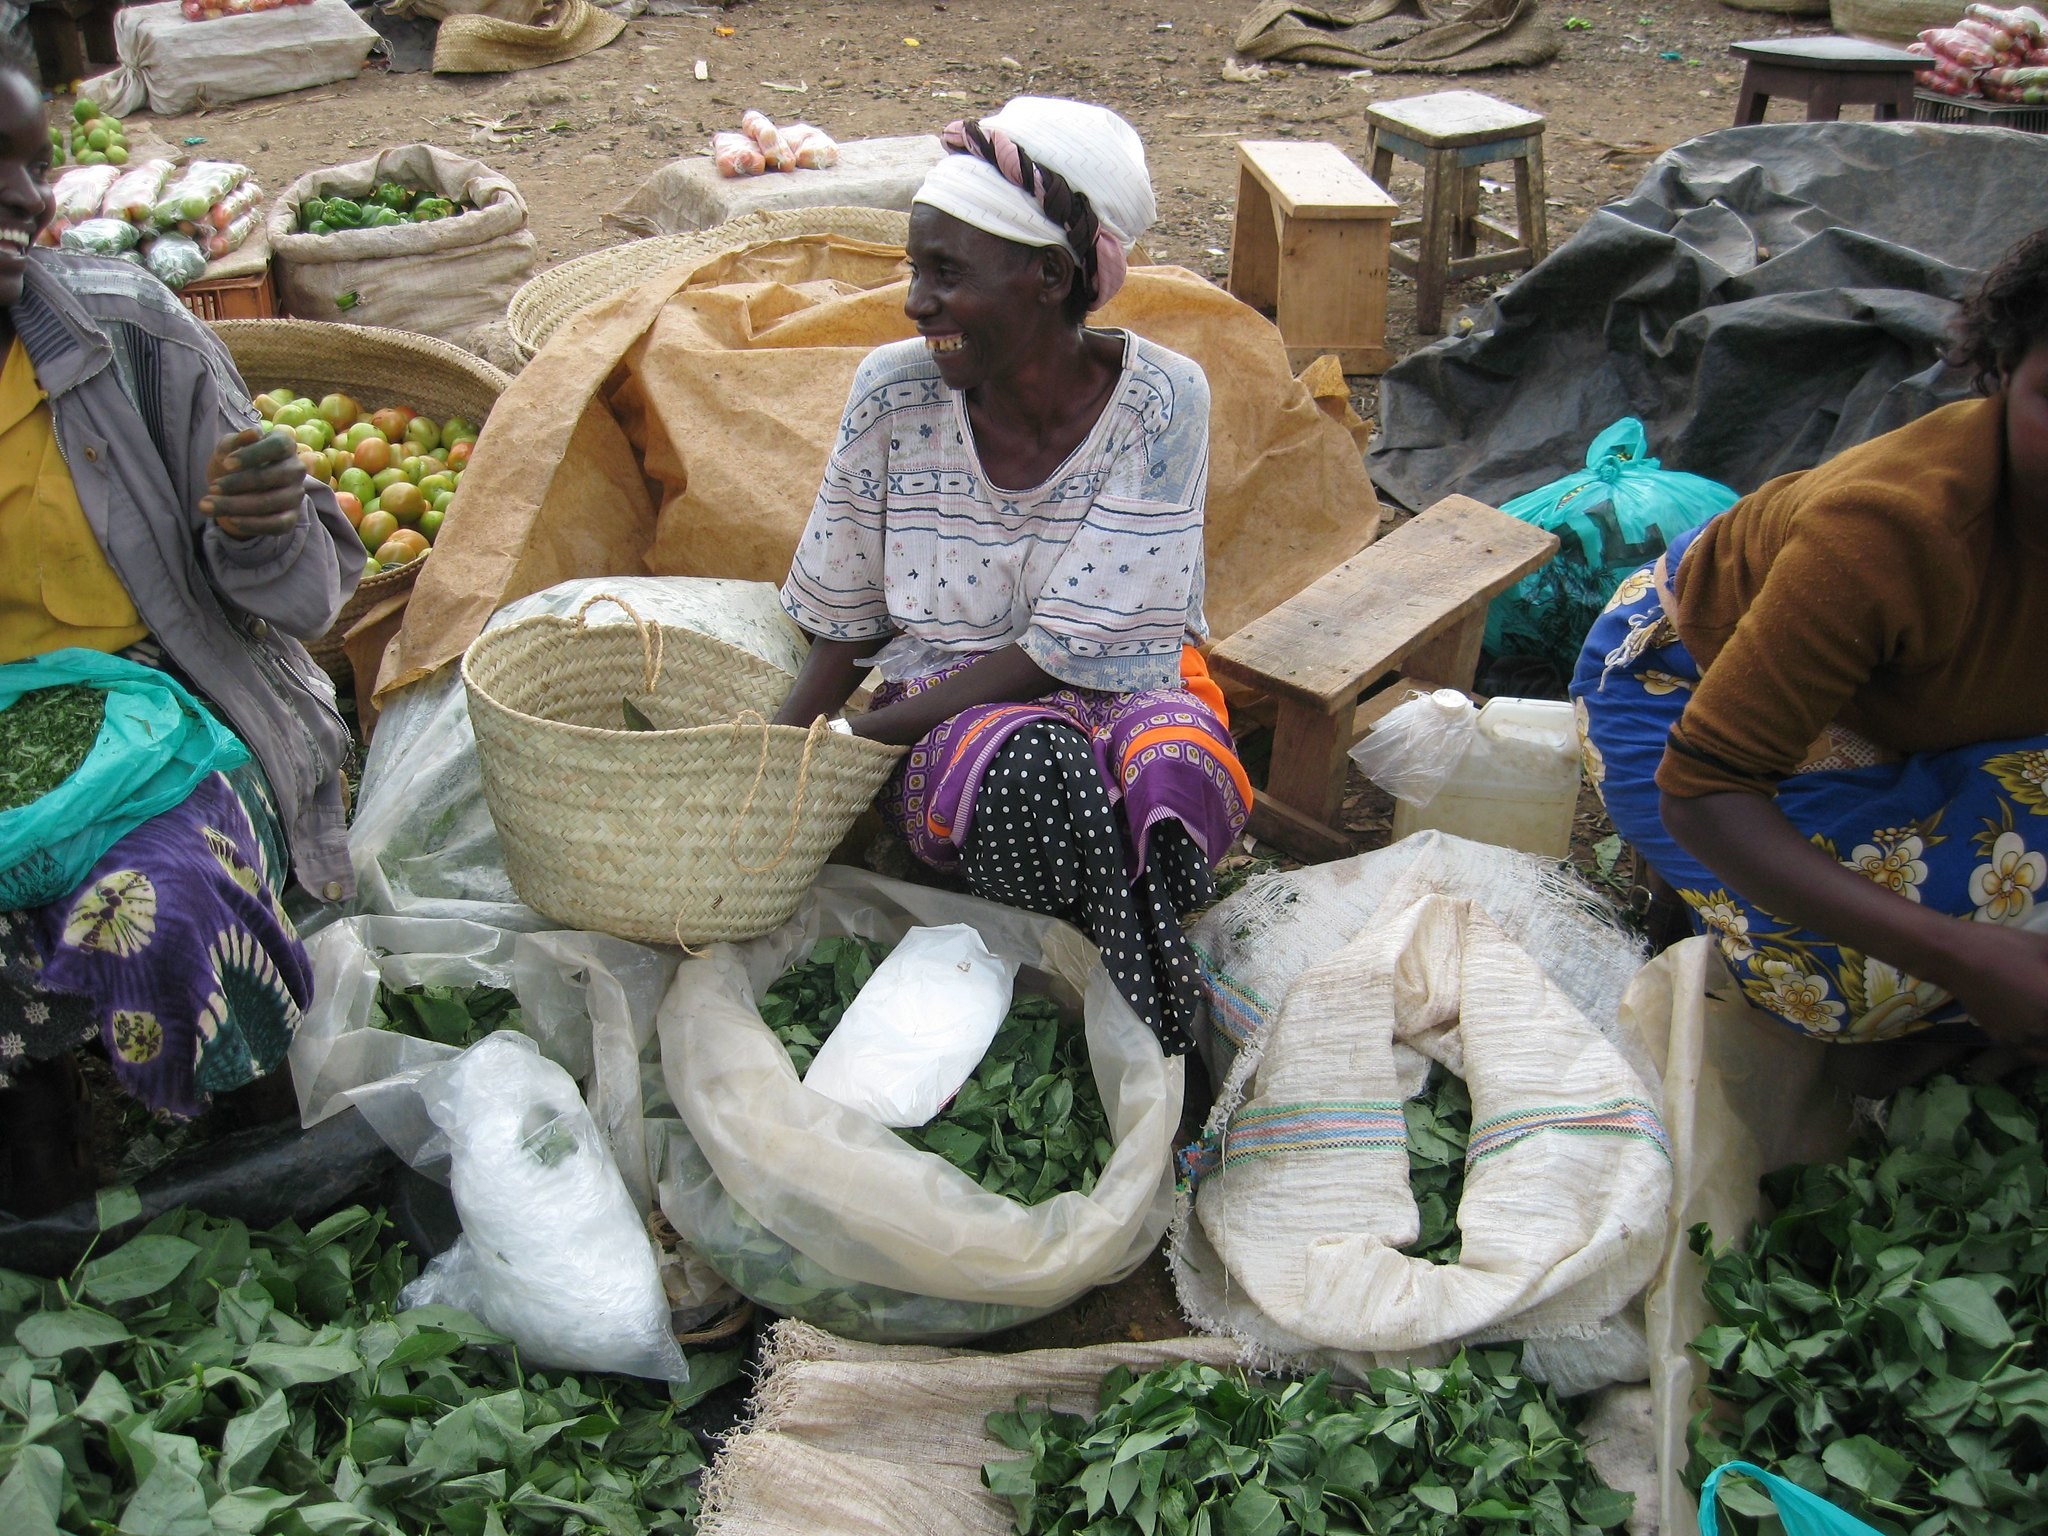 Women in the informal economy in Kenya